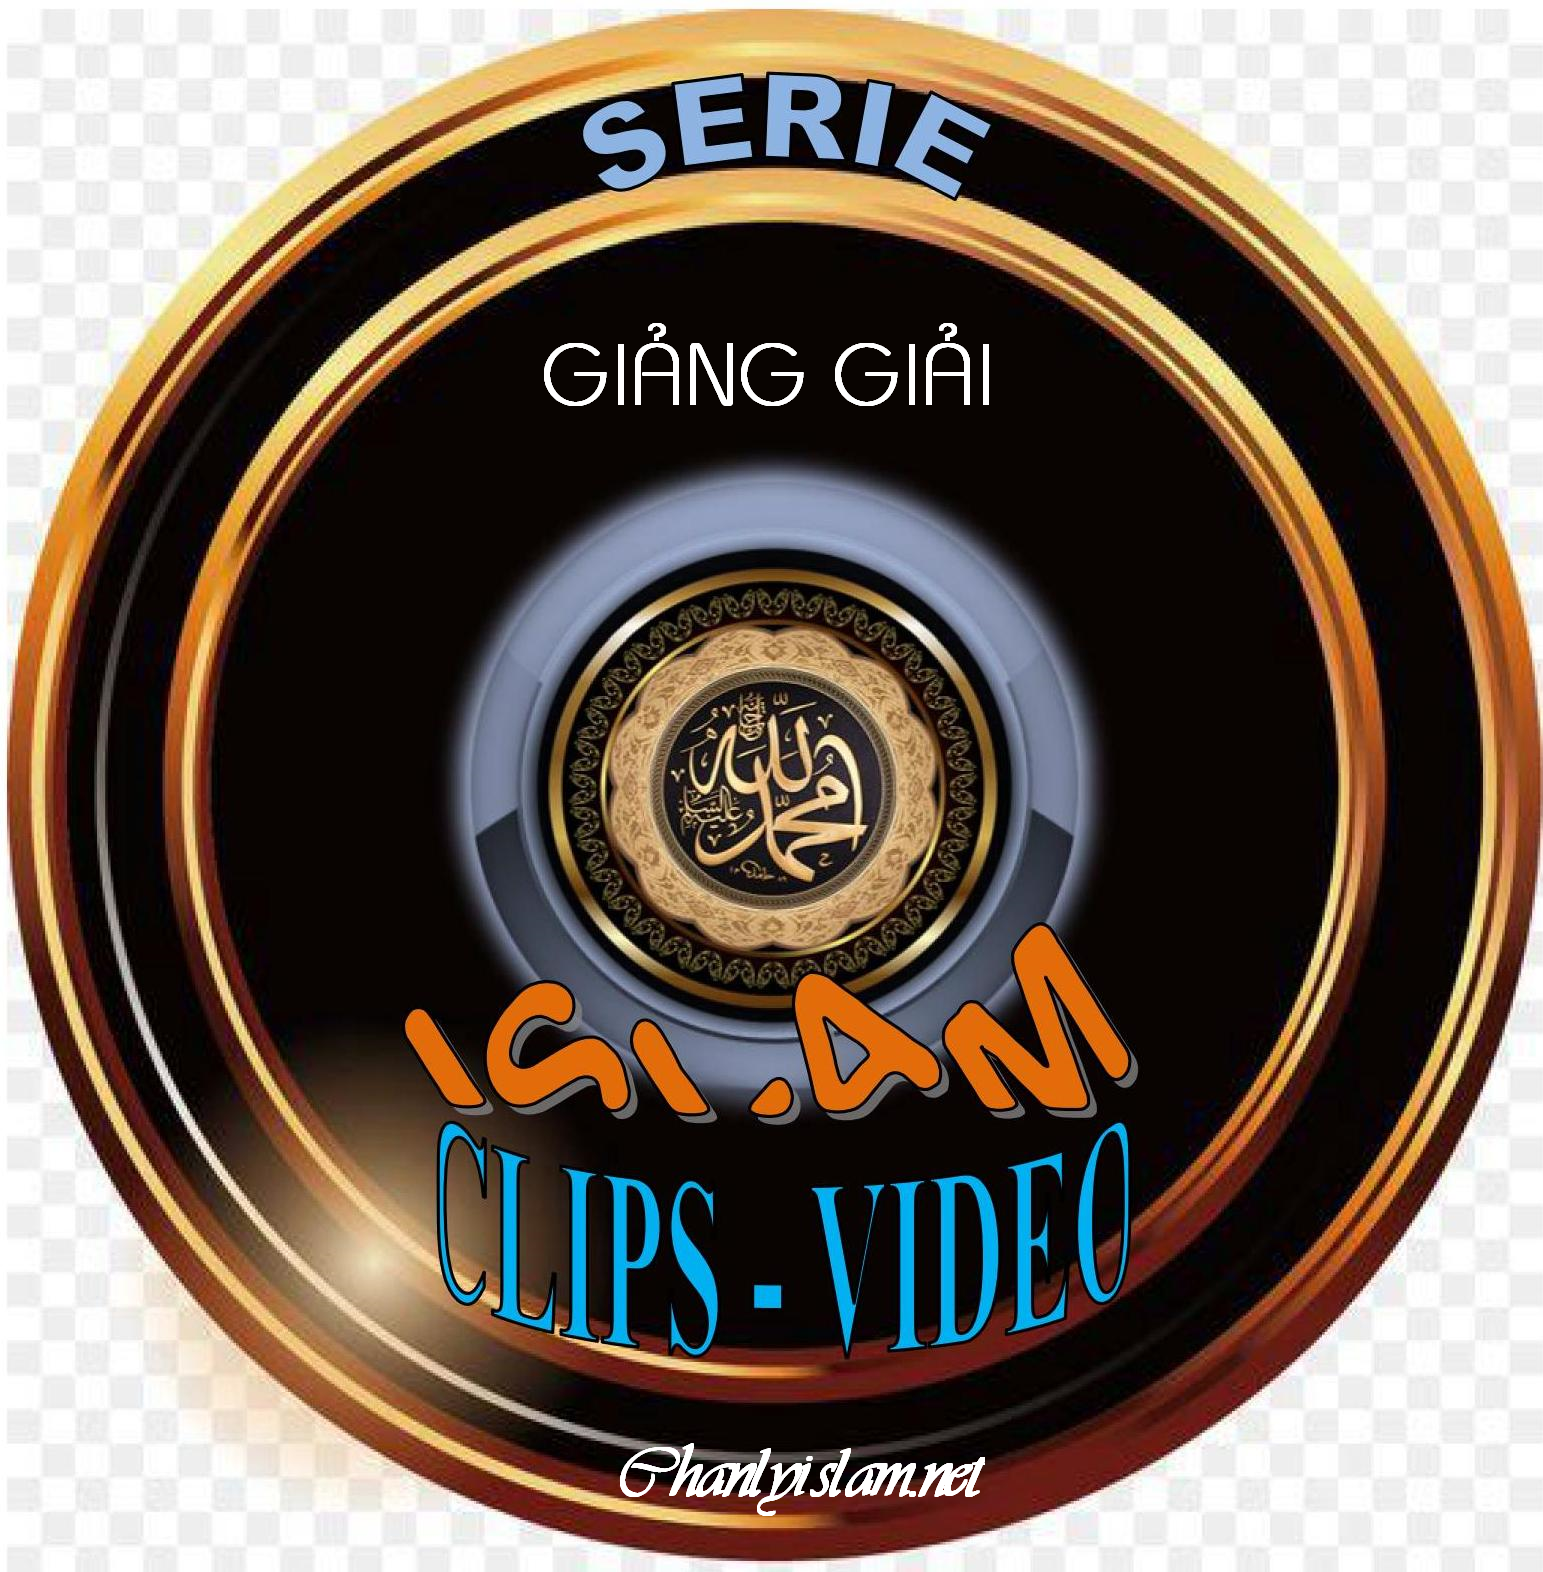 SERIE CLIPS VIDEO TÔN GIÁO ISLAM